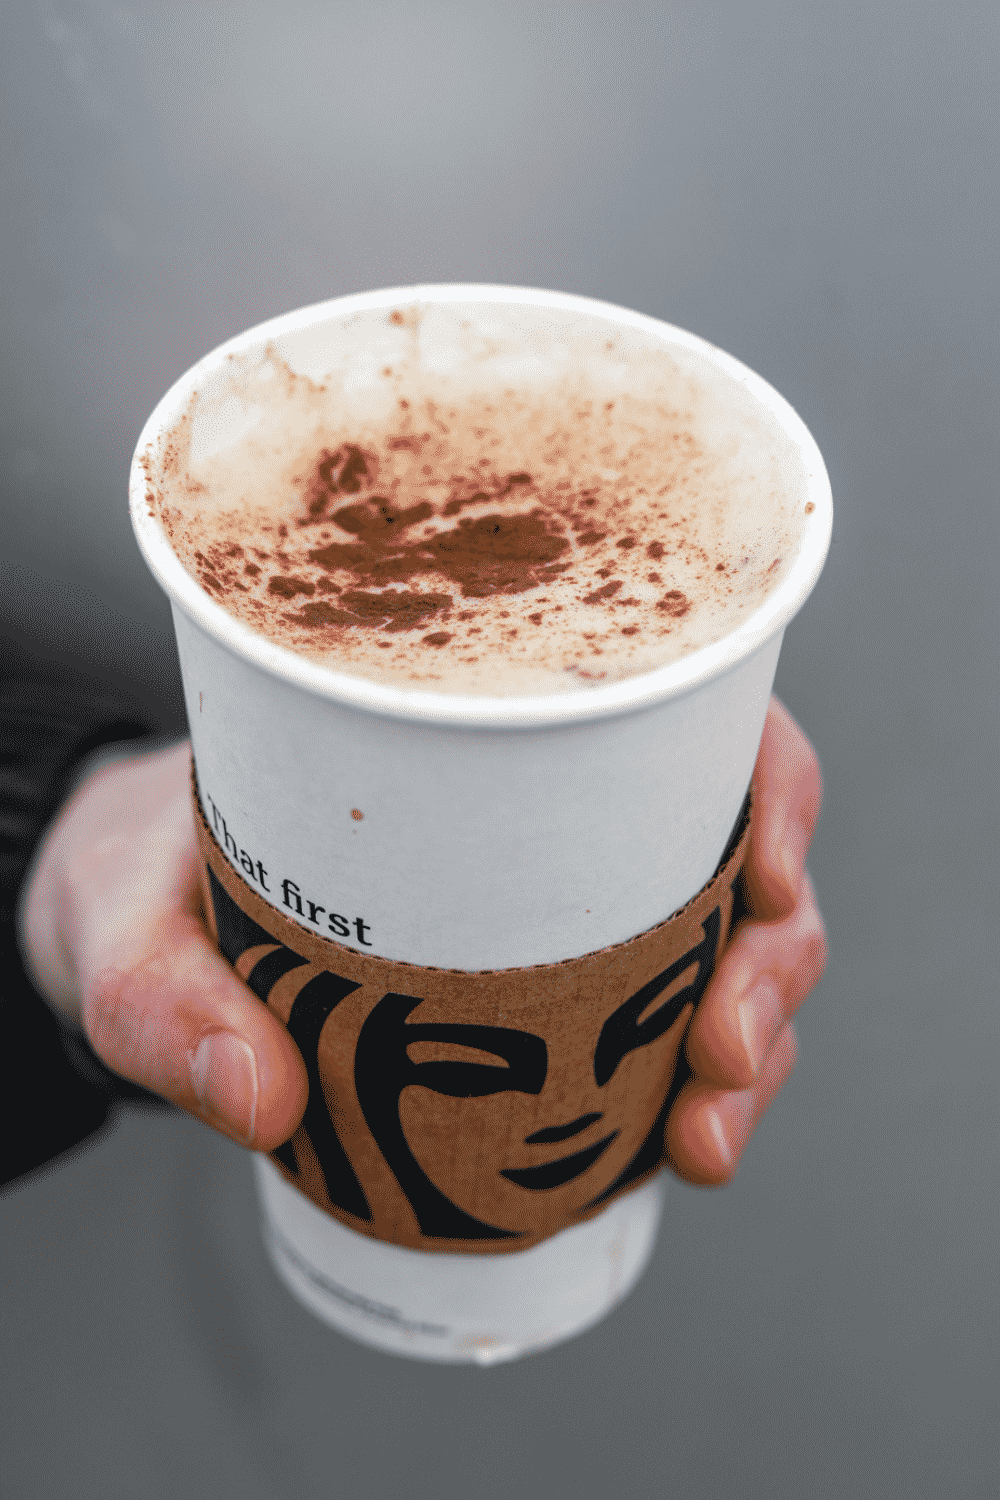 A hand holding a cup of Starbucks cinnamon dolce latte.